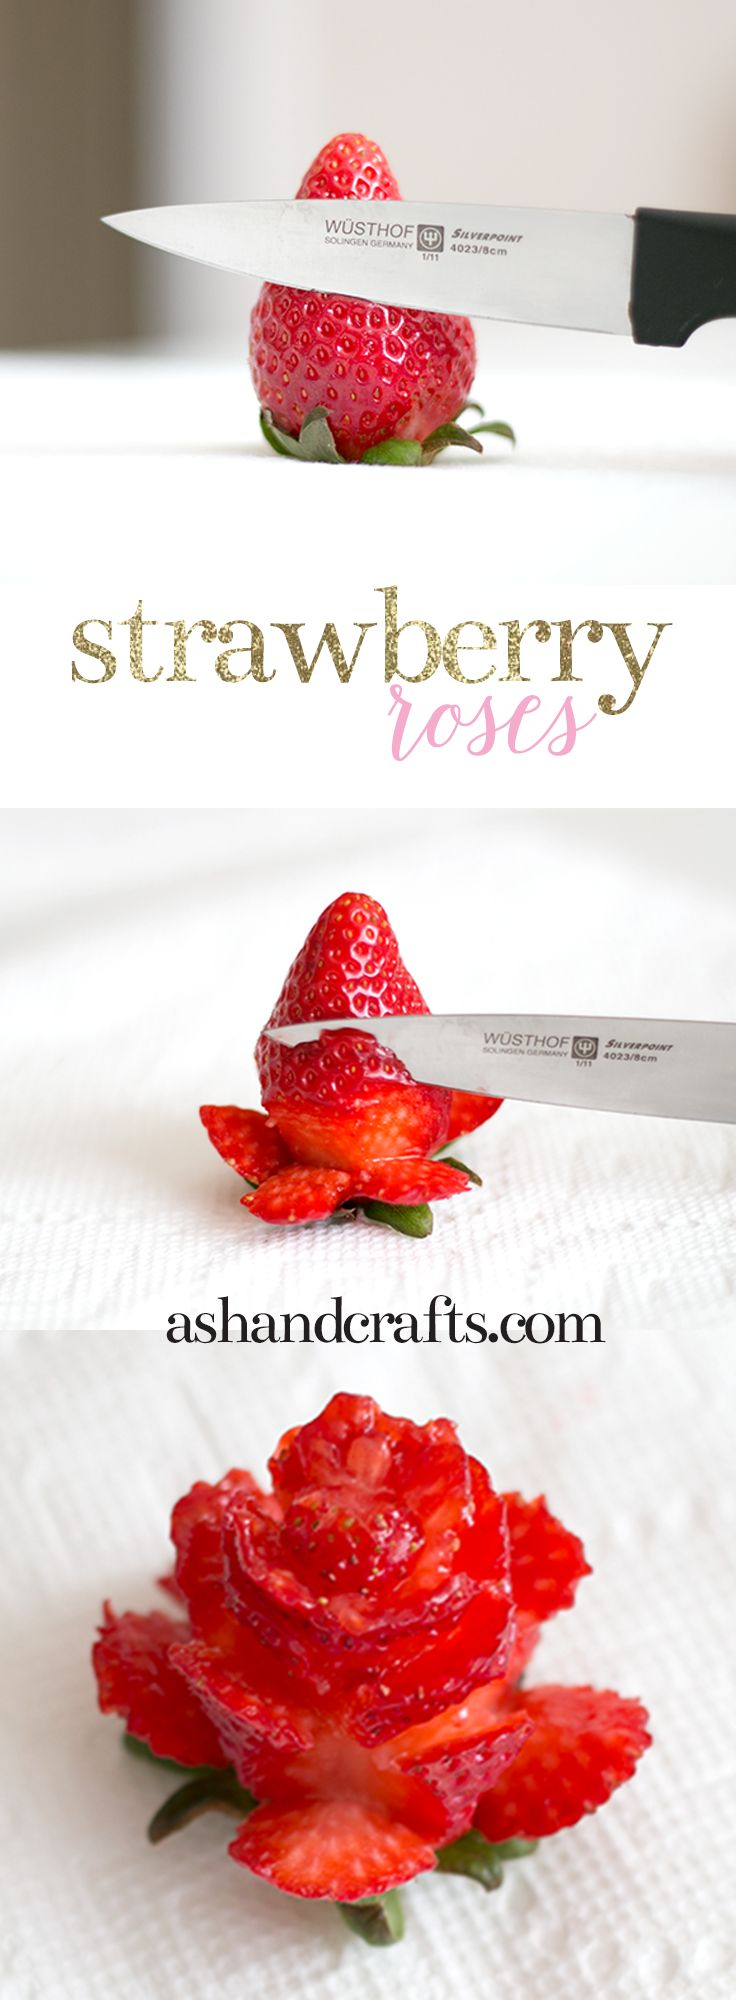 Learn how to cut strawberries into roses. See this tutorial and more at https://ashandcrafts.com